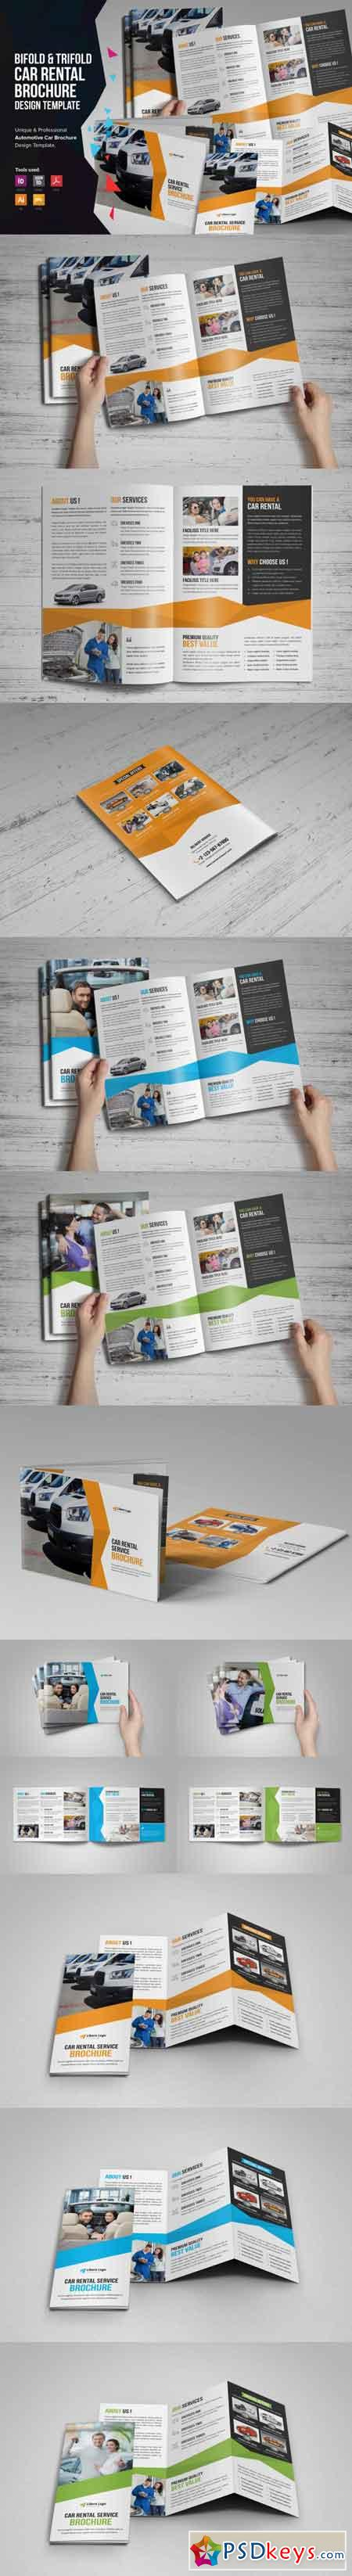 Auto Car Rental Service Brochure v1 3513911